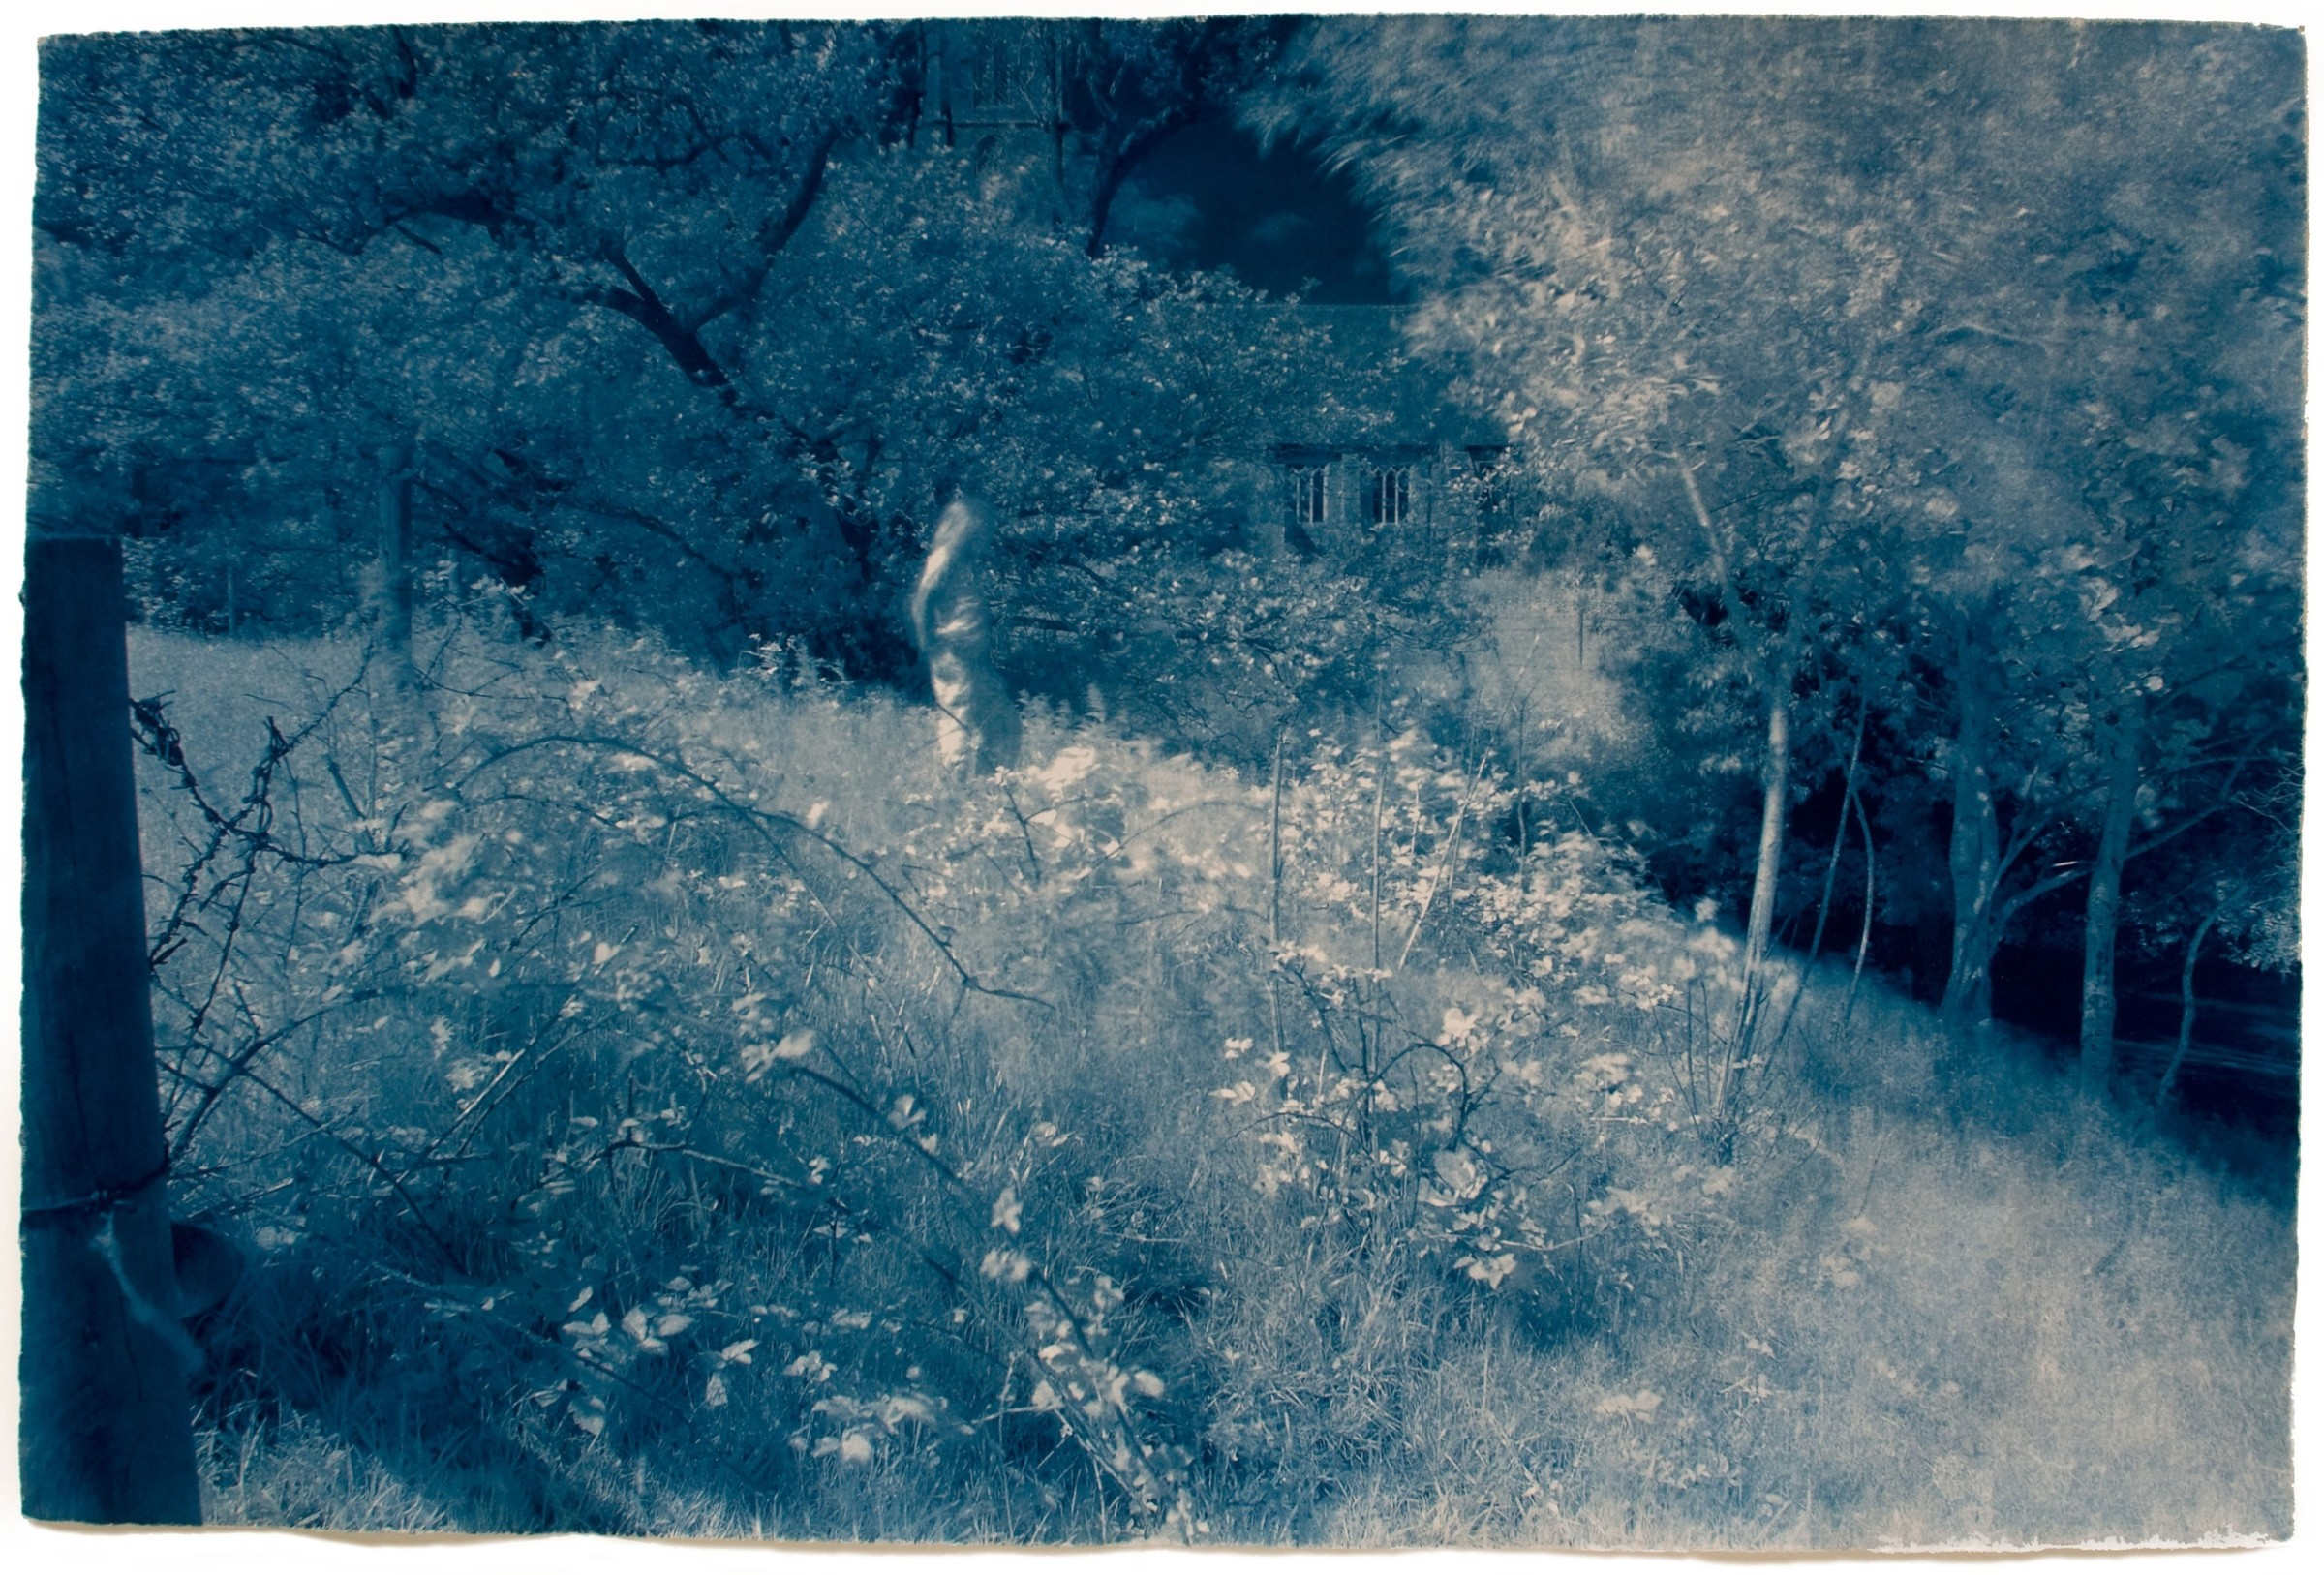 "<span class=""link fancybox-details-link""><a href=""/exhibitions/17/works/image_standalone696/"">View Detail Page</a></span><p><strong>Martyn Grimmer</strong></p><p>Tales from the Riverbank 1</p><p>cyanotype, ed of 30</p><p>89 x 63cm</p><p>£575 framed</p><p>£375 unframed</p>"